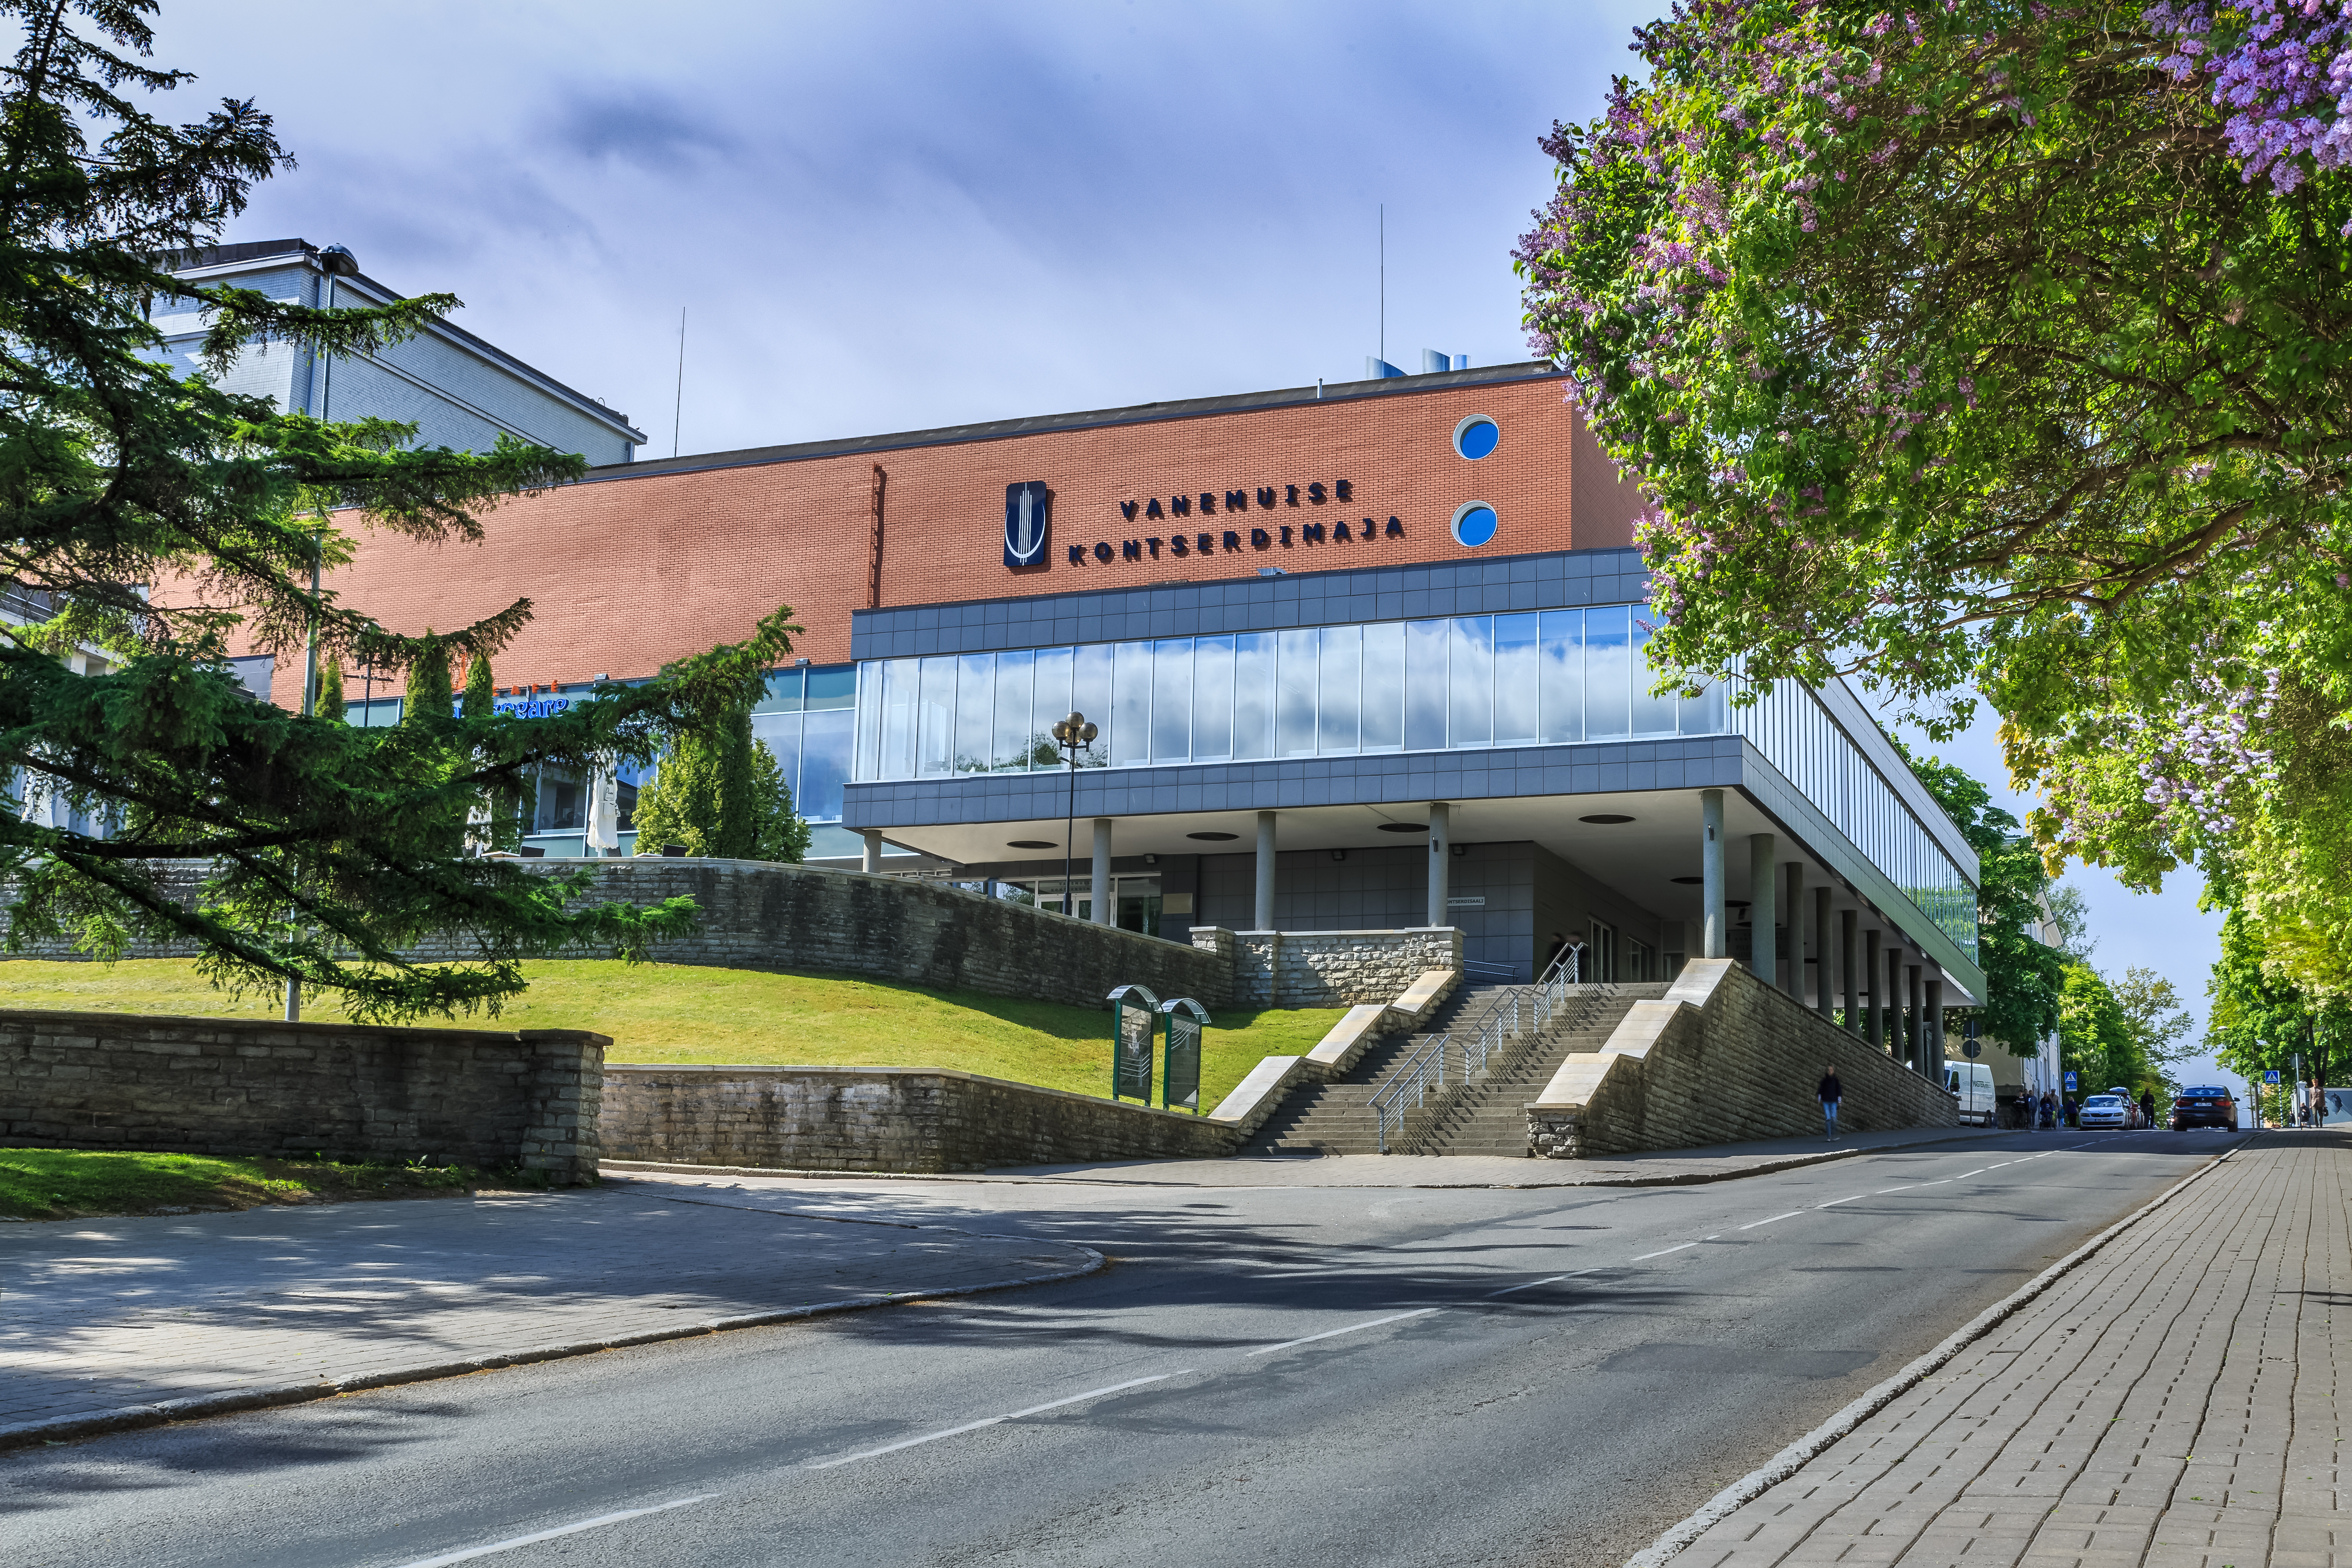 Vanemuise Concert Hall